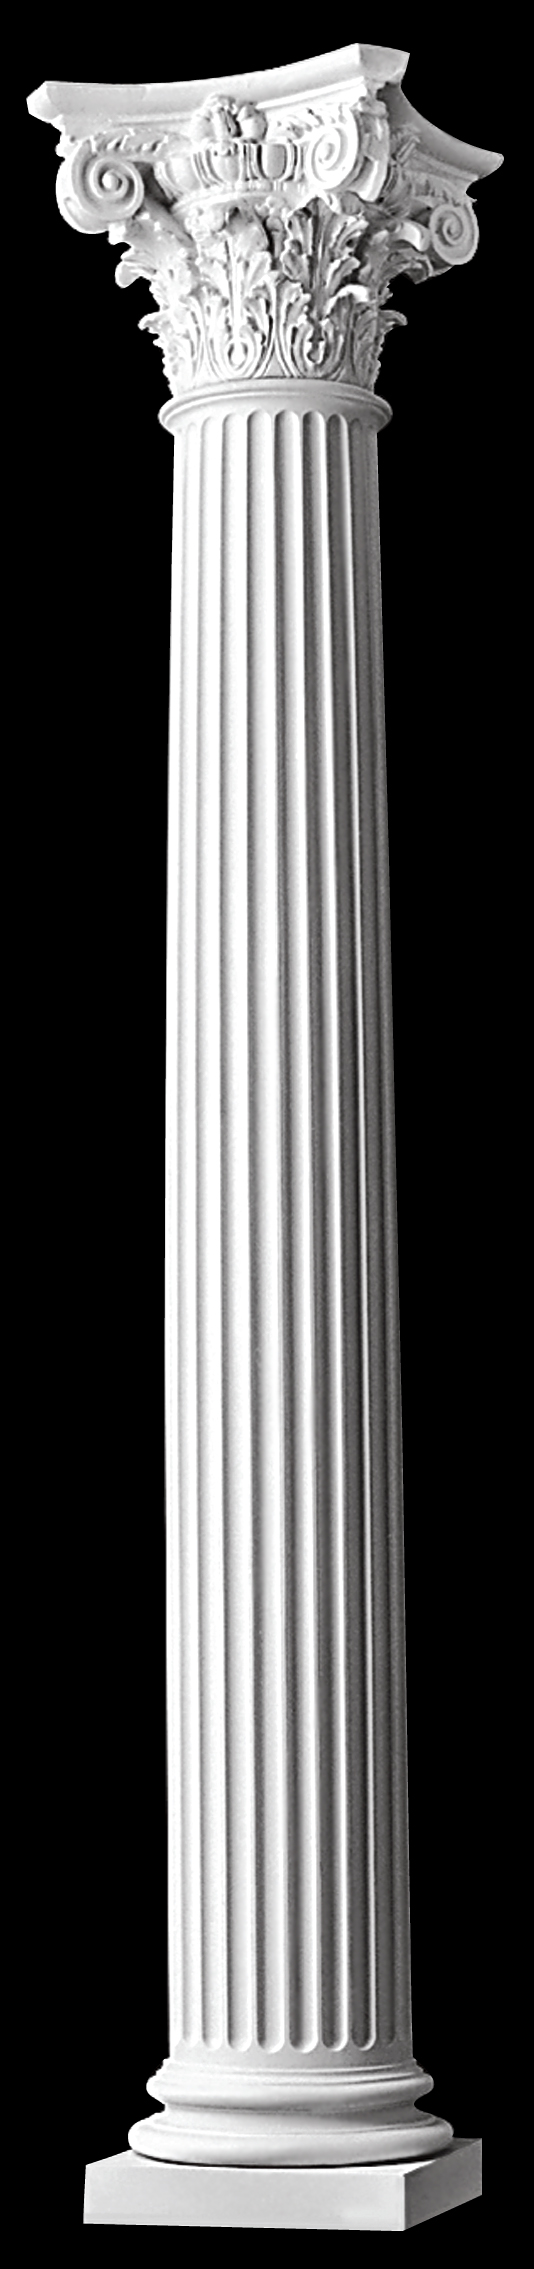 Columns fluted composite order wood columns 1 800 486 2118 for Tapered columns